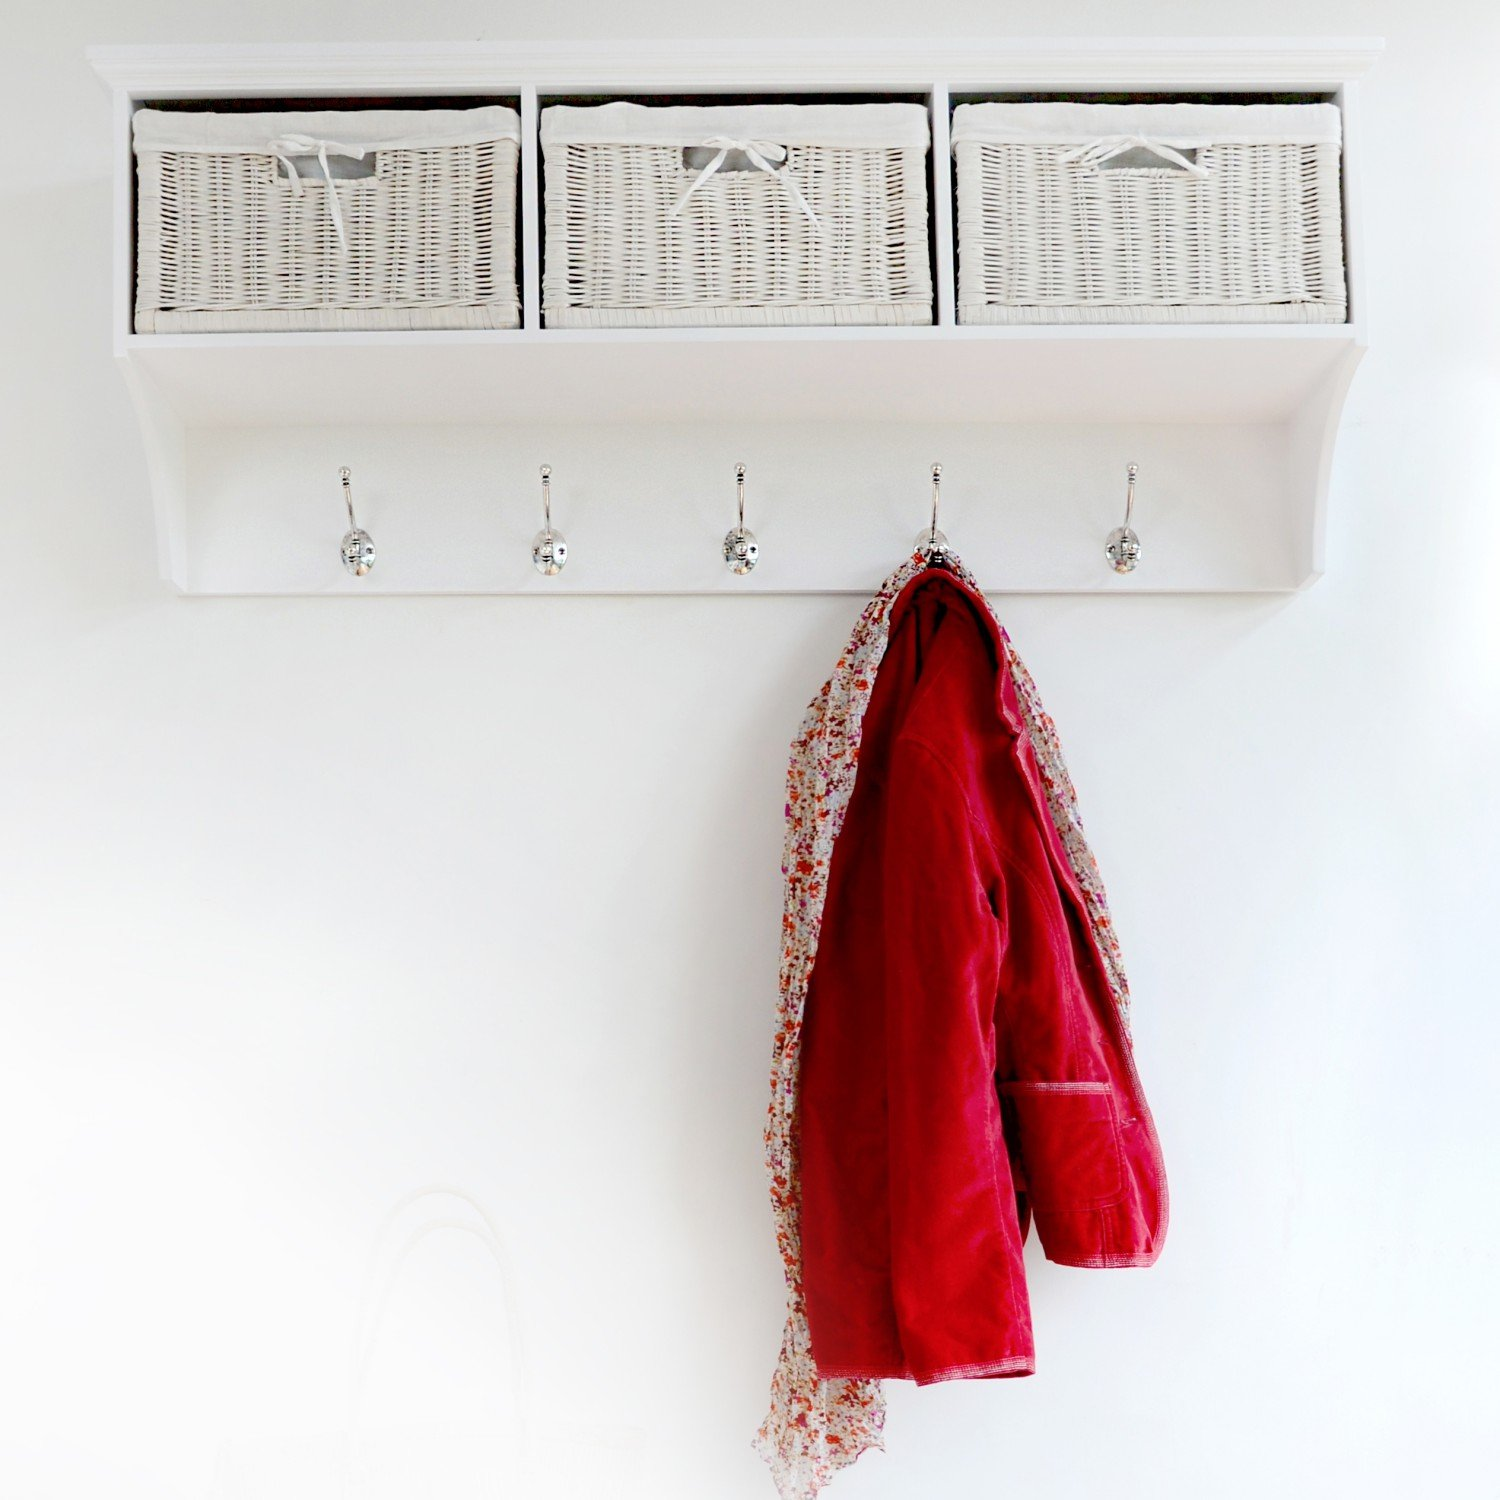 Tetbury Large White Coat Rack With Storage Baskets, FULLY ASSEMBLED:  Amazon.co.uk: Kitchen U0026 Home Good Looking